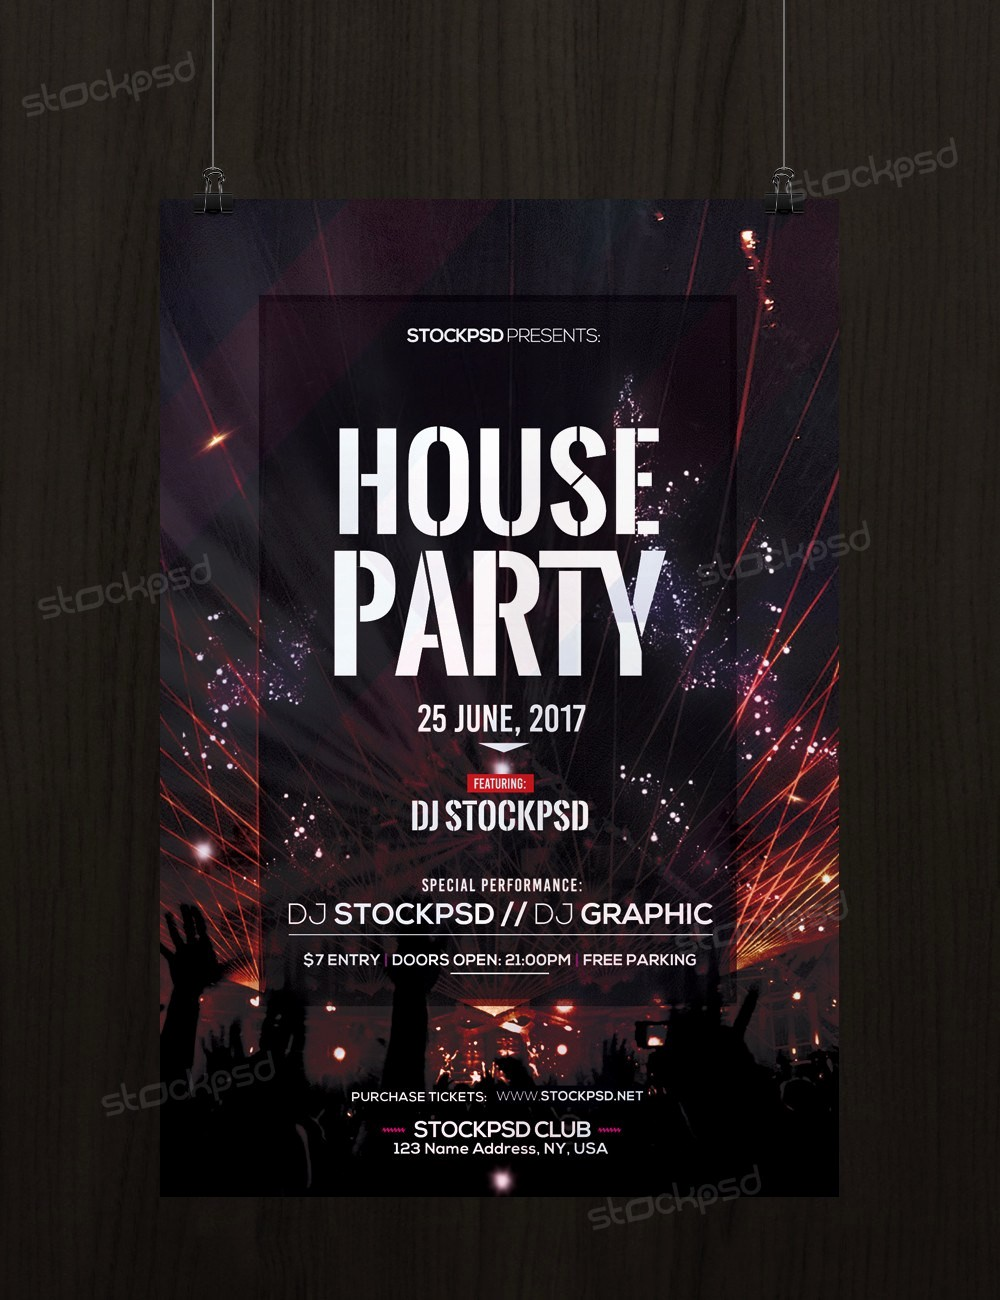 Party Flyer Templates Free Downloads Luxury House Party Download Free Psd Flyer Template